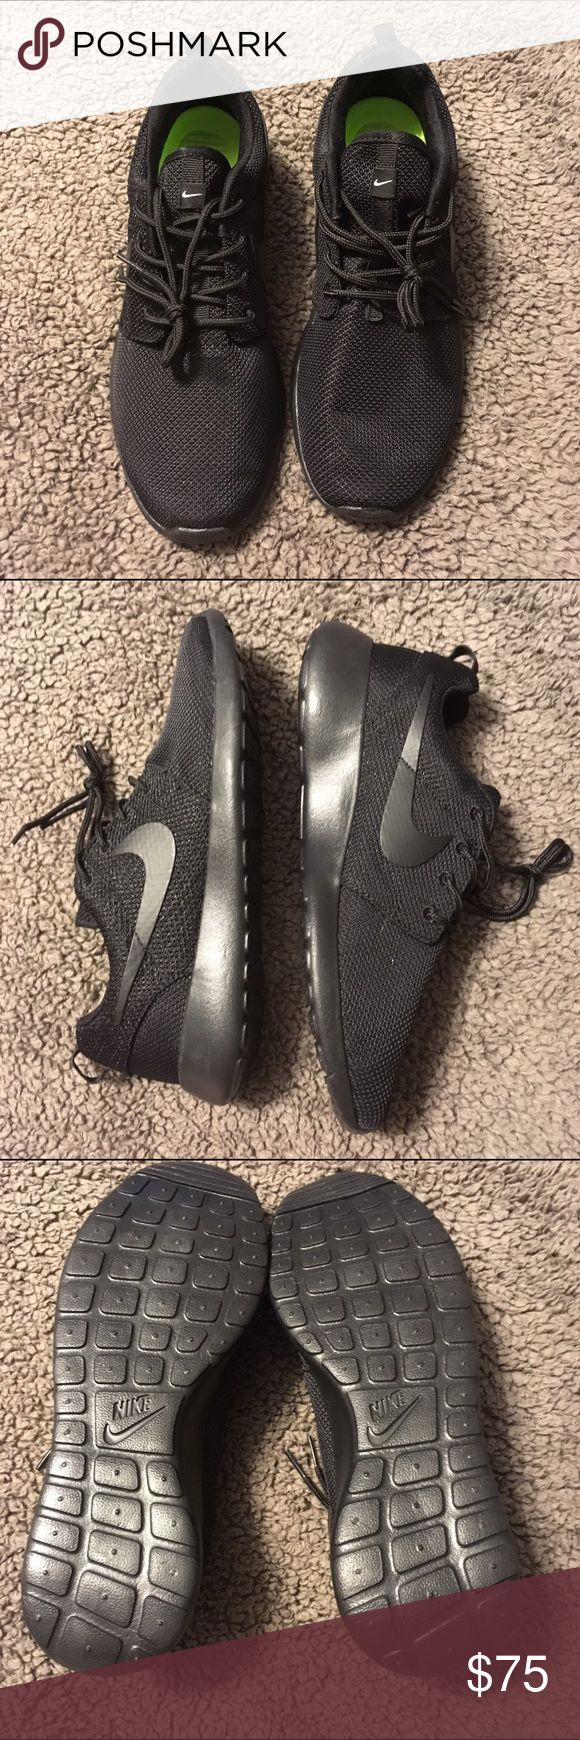 Nike Rosche Black nike rosche. Brand new never worn. I ordered a men's size 12 online and they sent a women'a size 12. Nike size chart shows a women's size 12 as a men's size 10.5. Make me an offer since I can't return them I threw the box out and ripped the tags off. Nike Shoes Sneakers